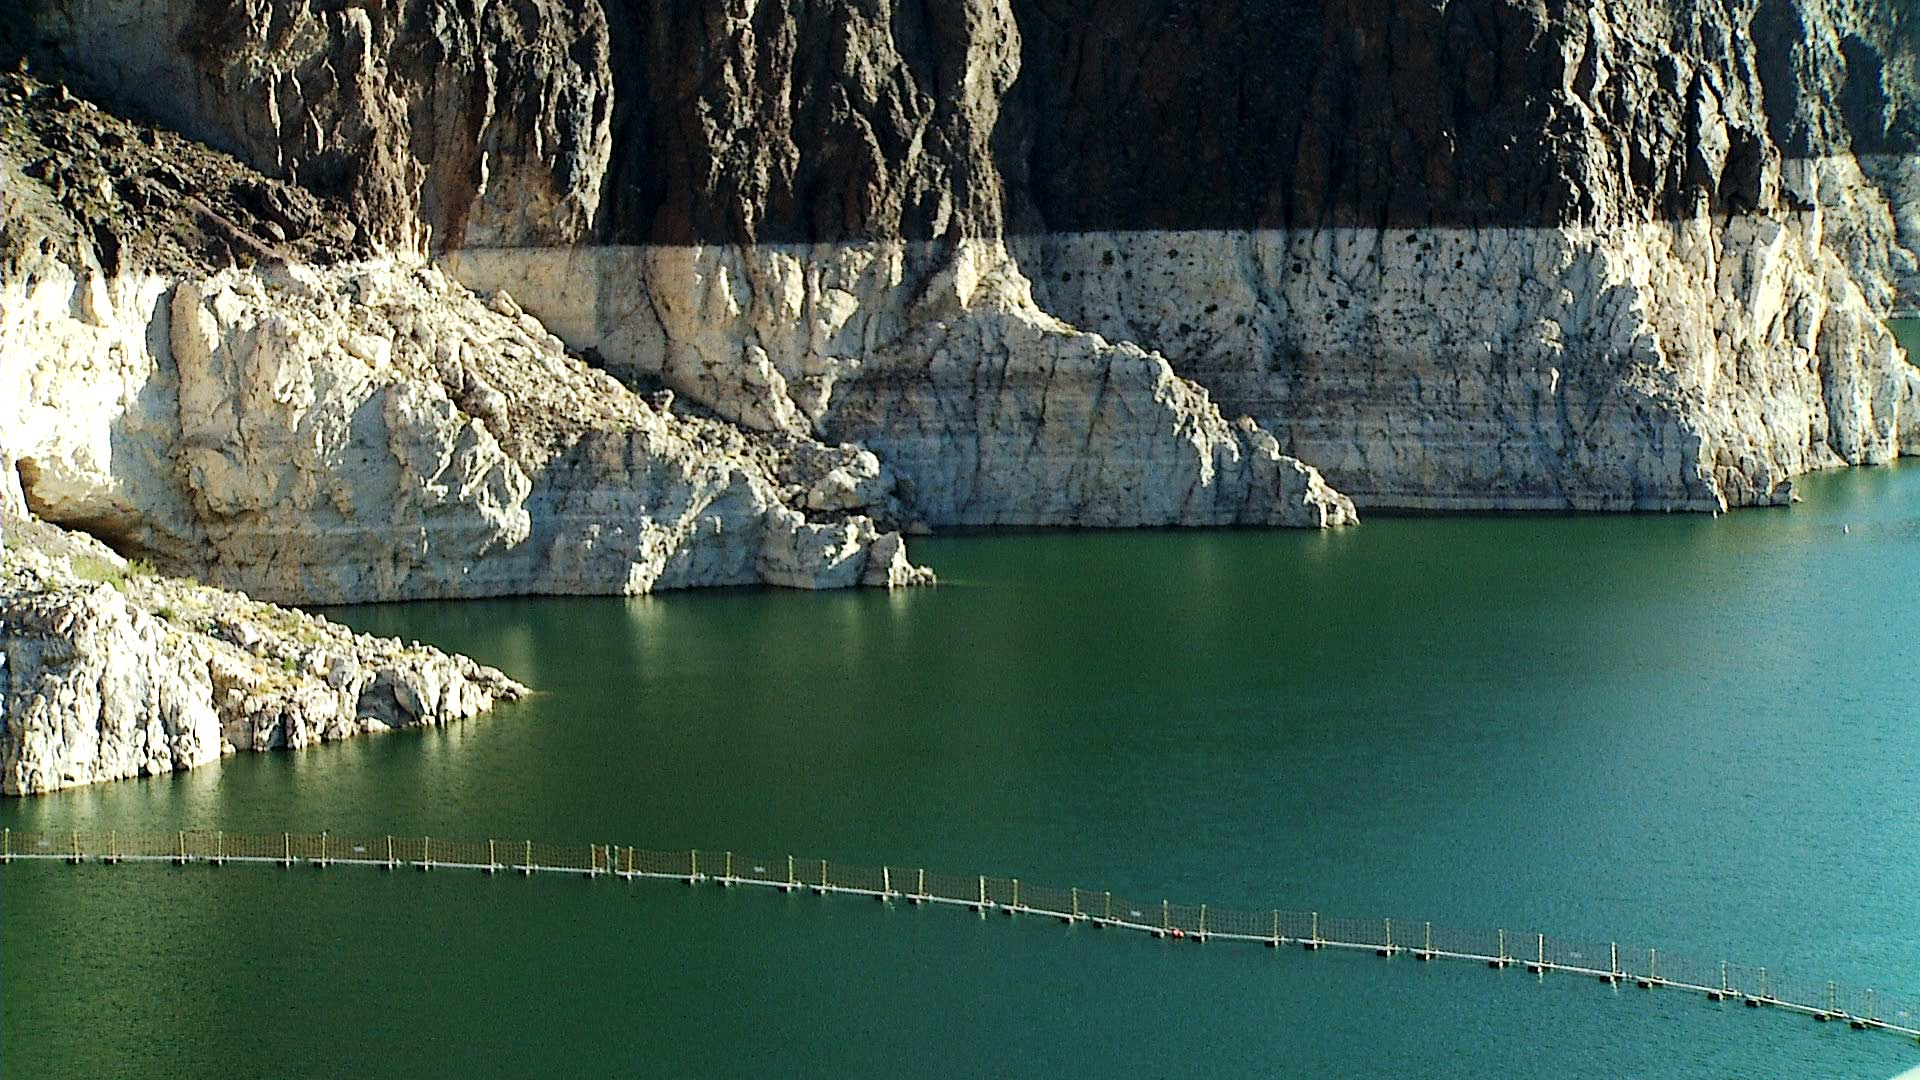 File image of a cliffside at Lake Mead.